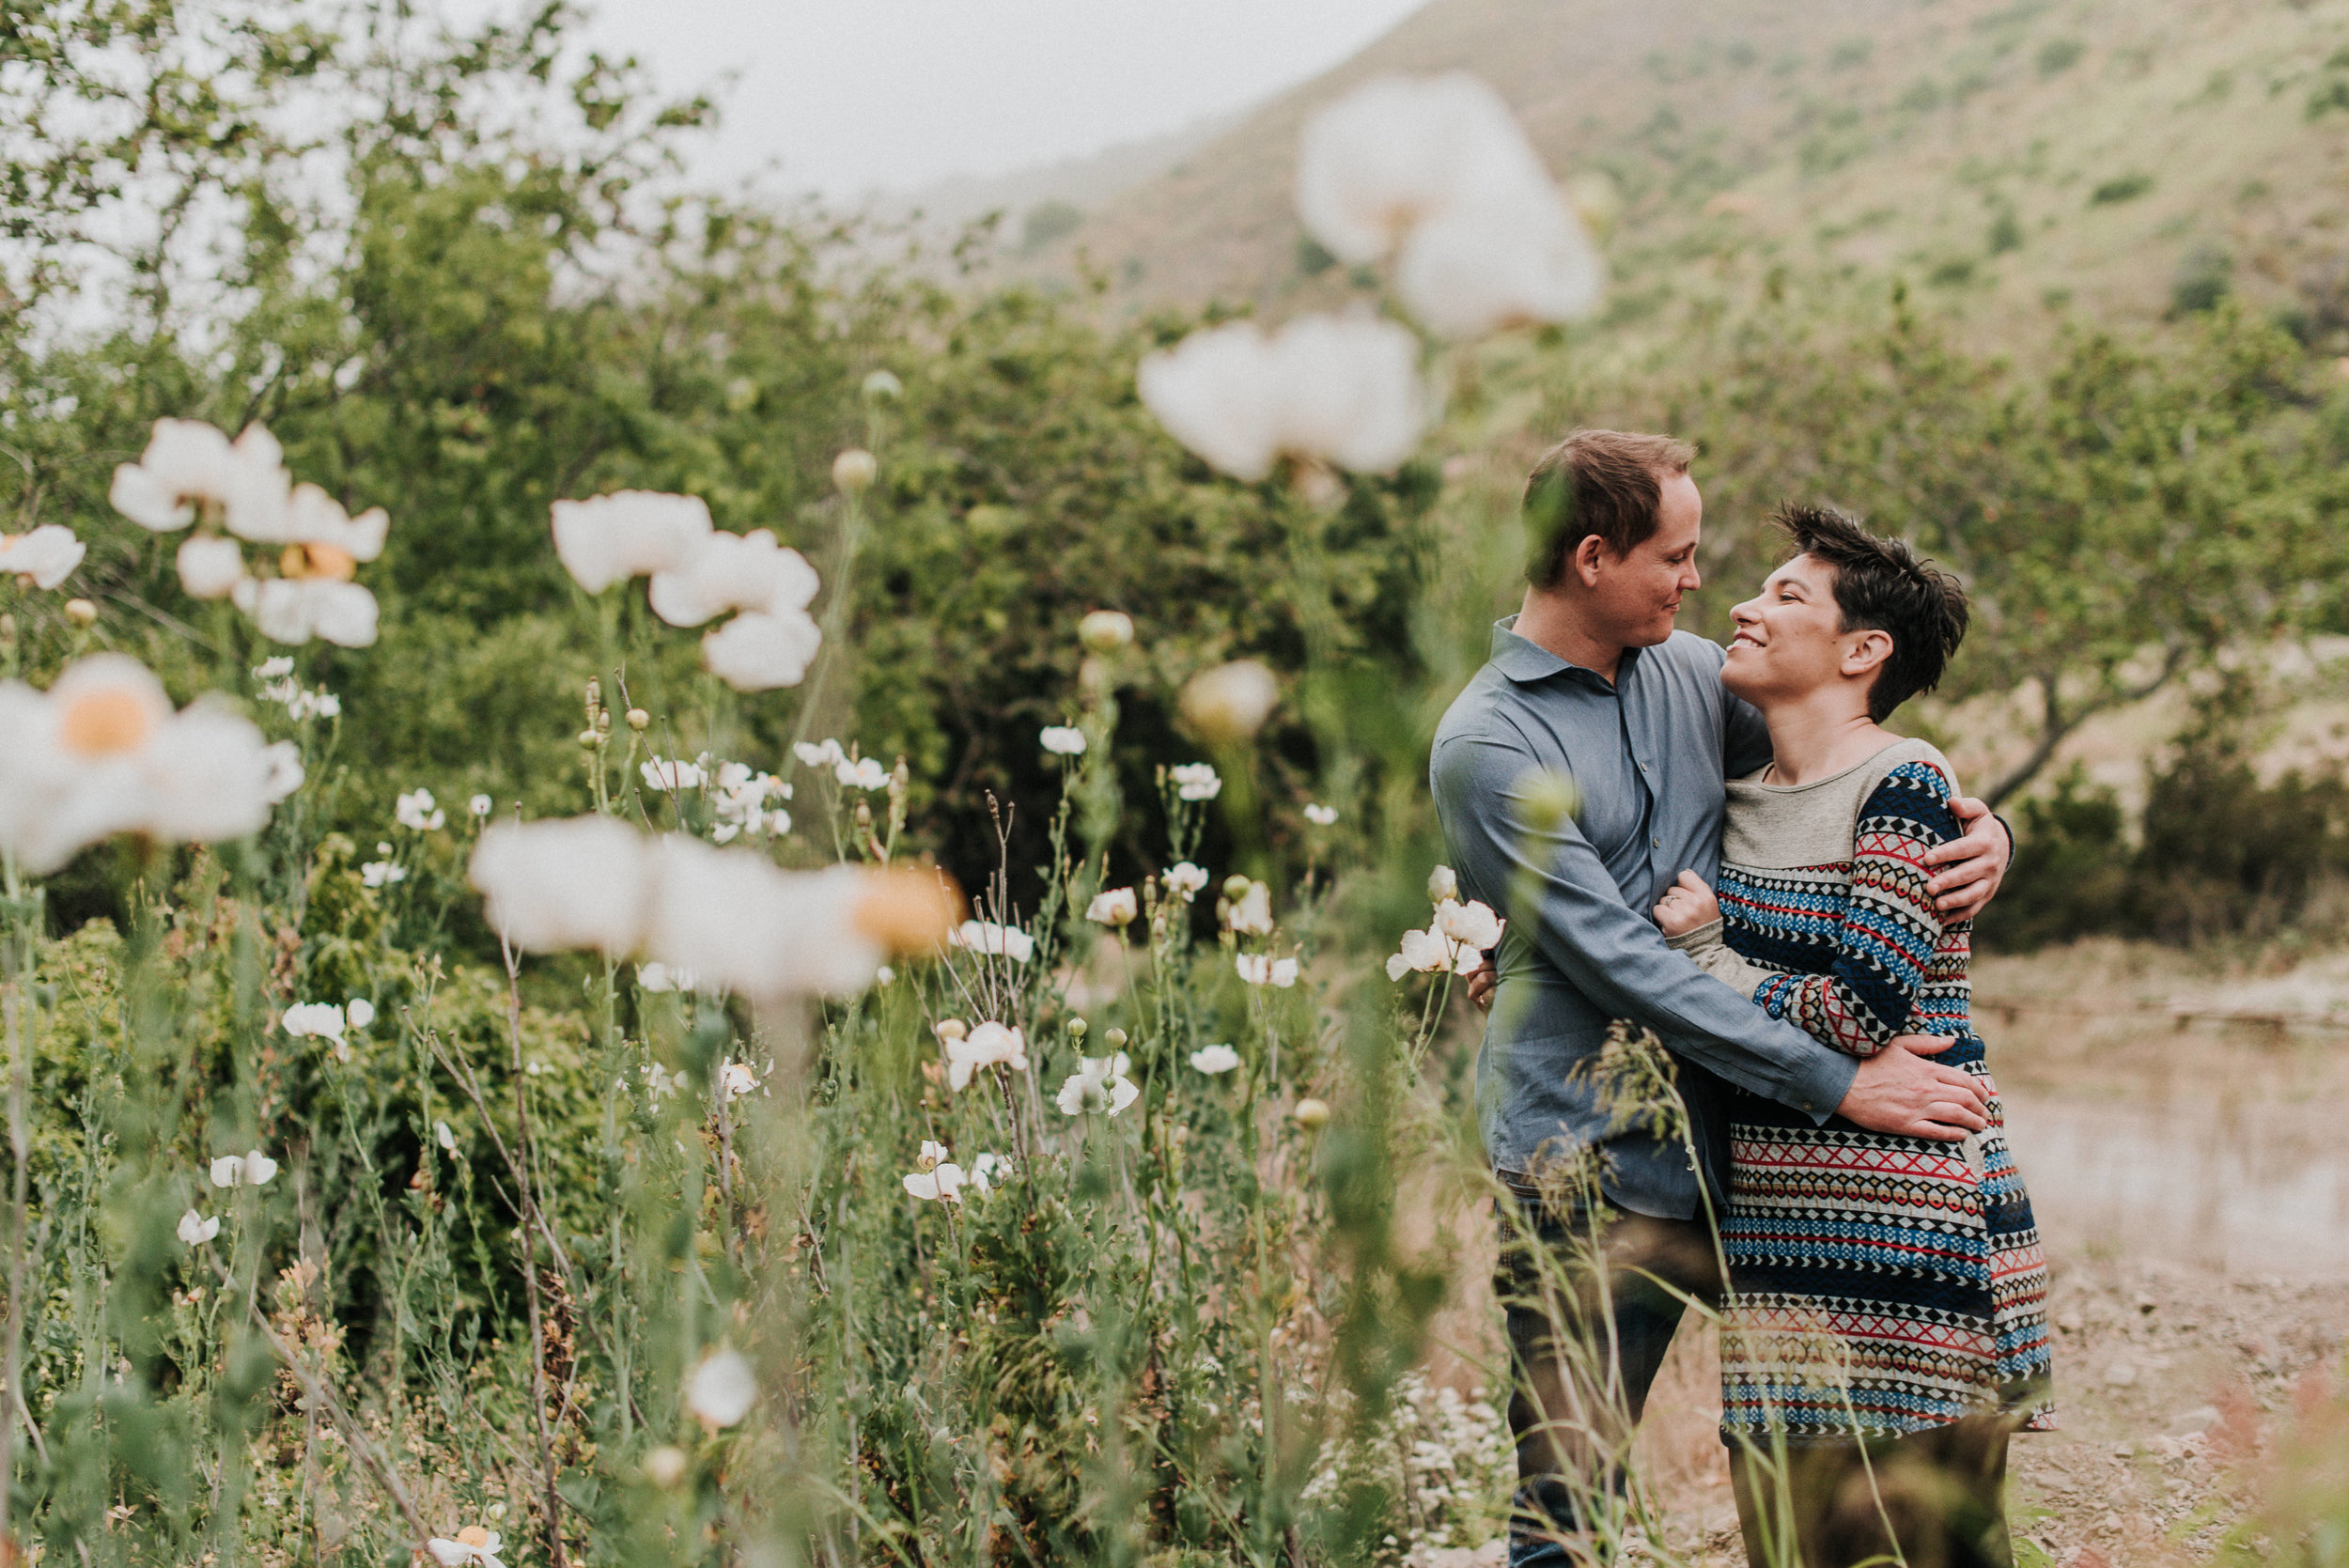 2019-06-17_Danielle_and_Brandon_-_Engaged_-_Silverado-177.jpg